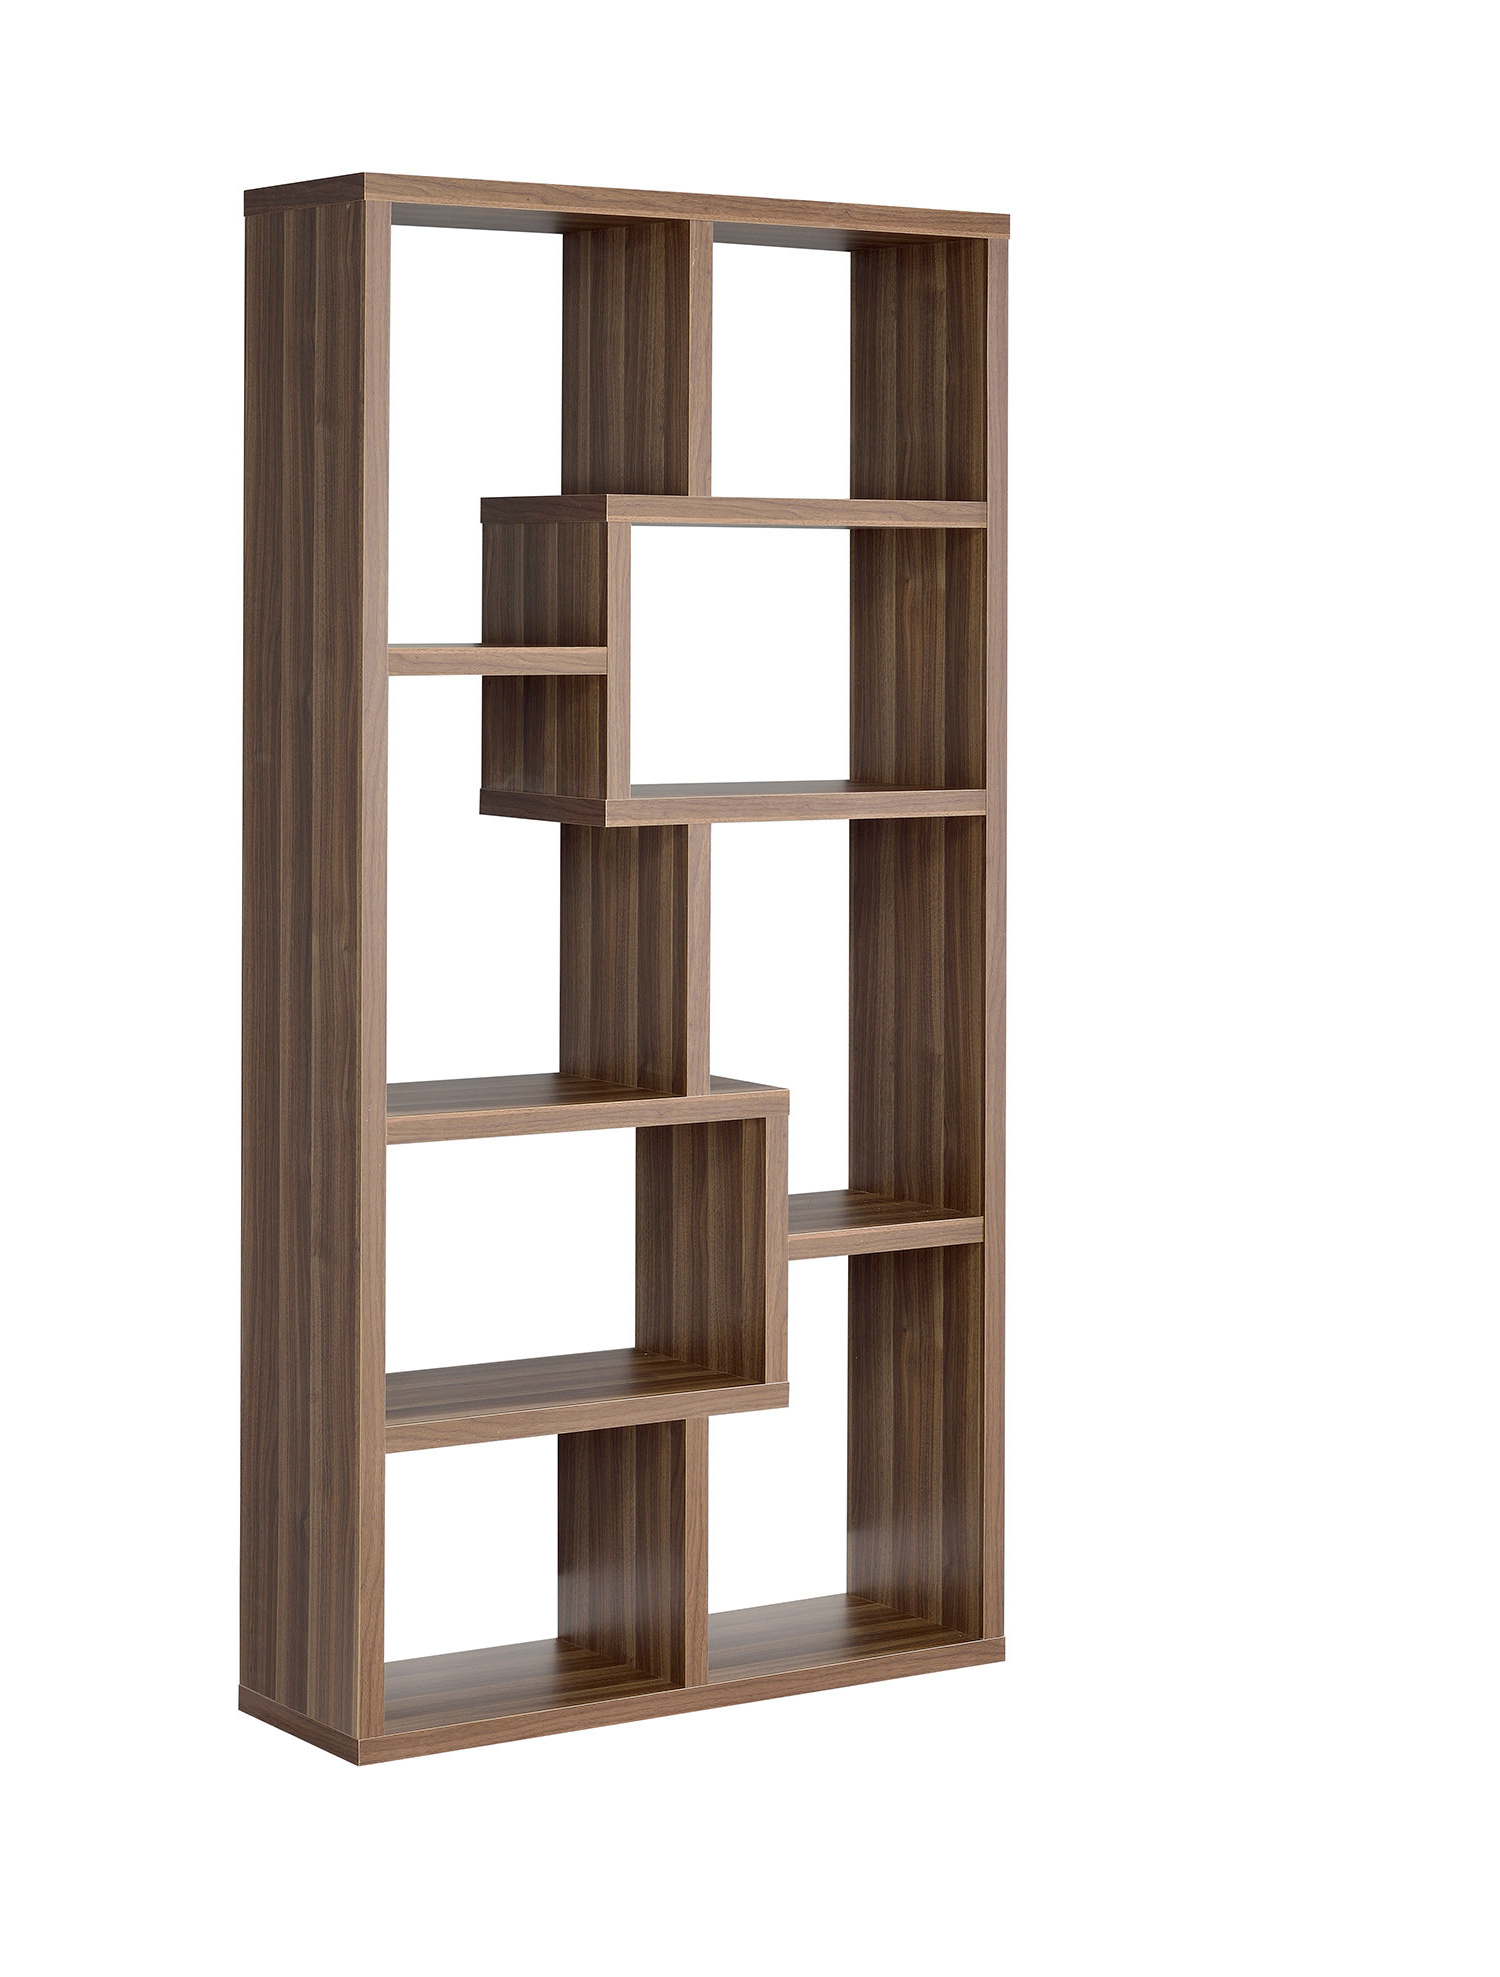 Current Chantilly Geometric Bookcases Intended For Flavius Geometric Bookcase (View 7 of 20)